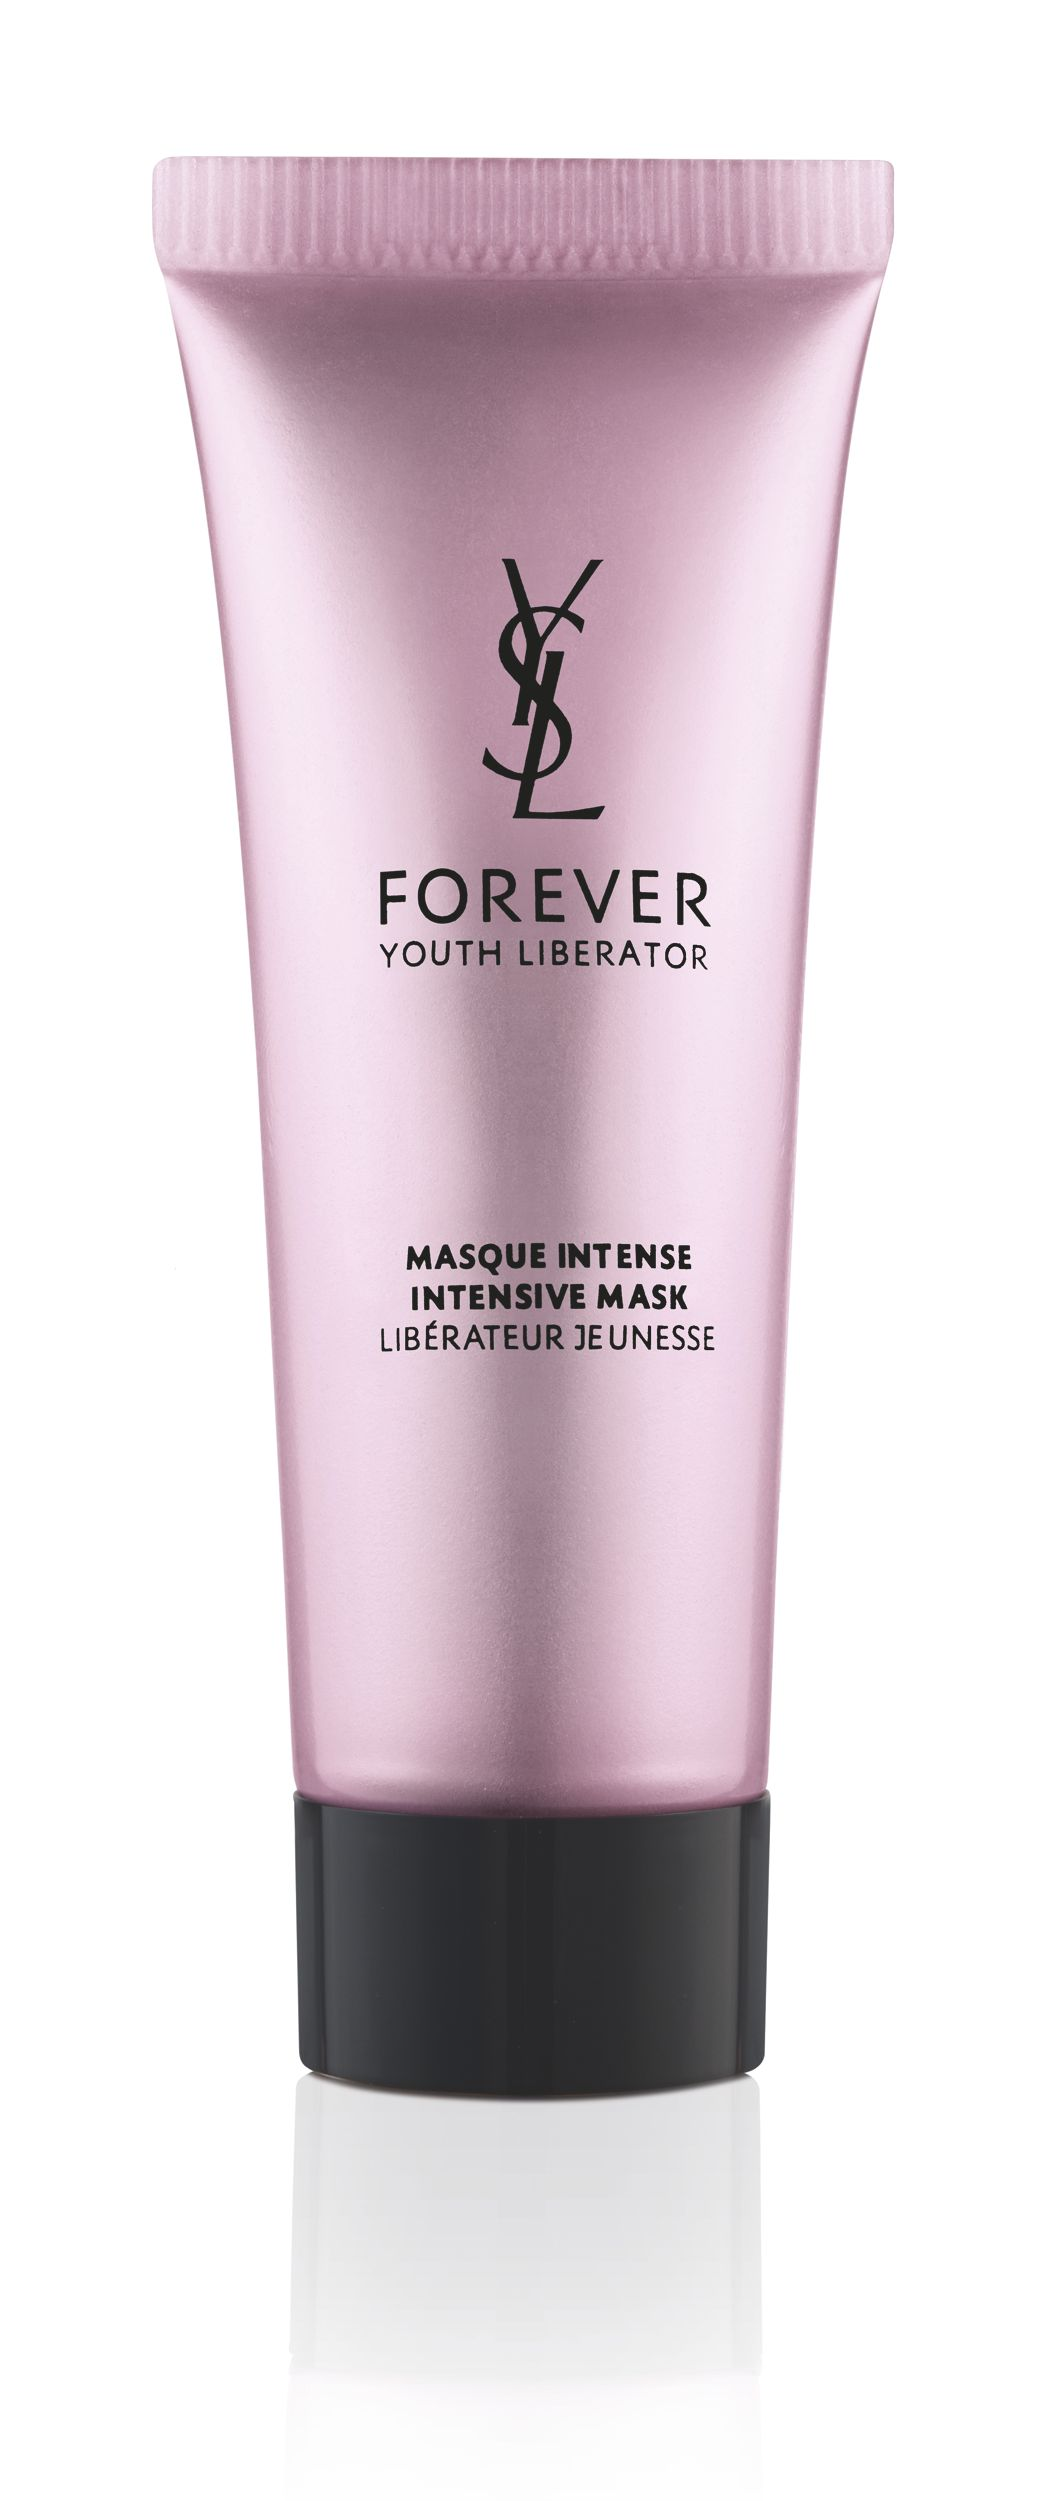 Yves Saint Laurent Forever Youth Liberator Intensive Mask